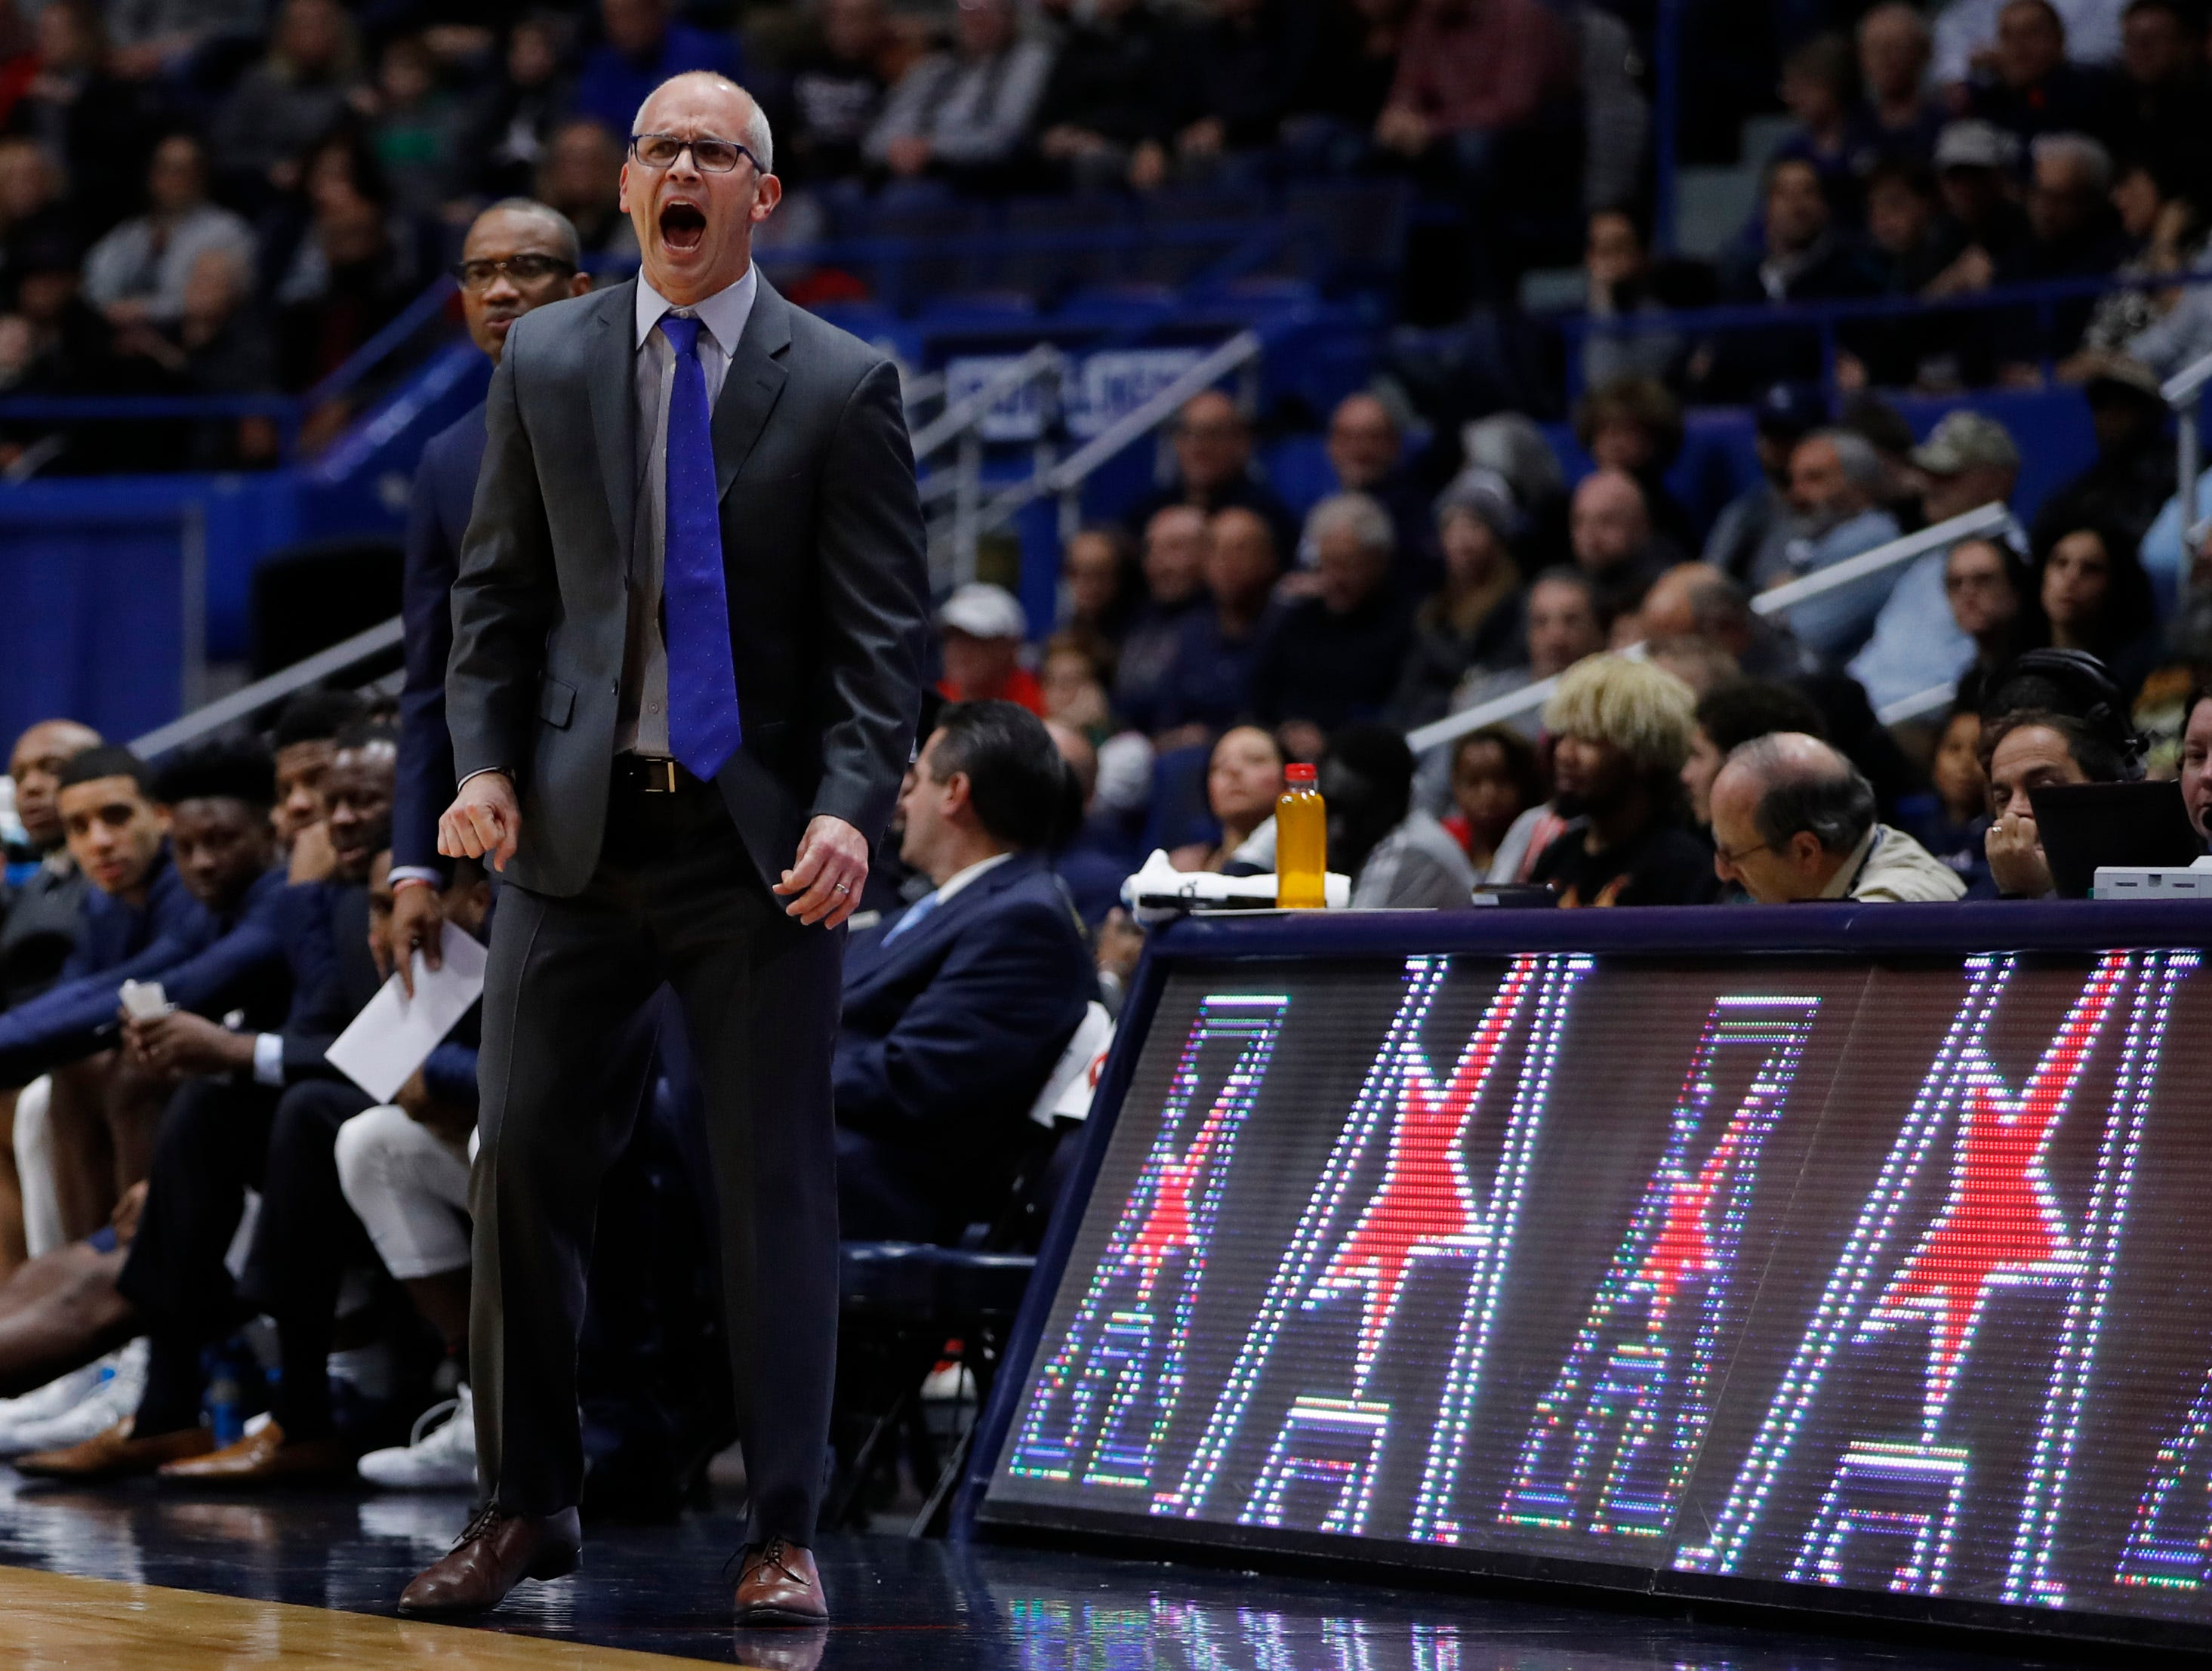 Nov 20, 2018; Storrs, CT, USA; Connecticut Huskies head coach Dan Hurley watches from the sideline in the first half against the Cornell Big Red at XL Center. Mandatory Credit: David Butler II-USA TODAY Sports